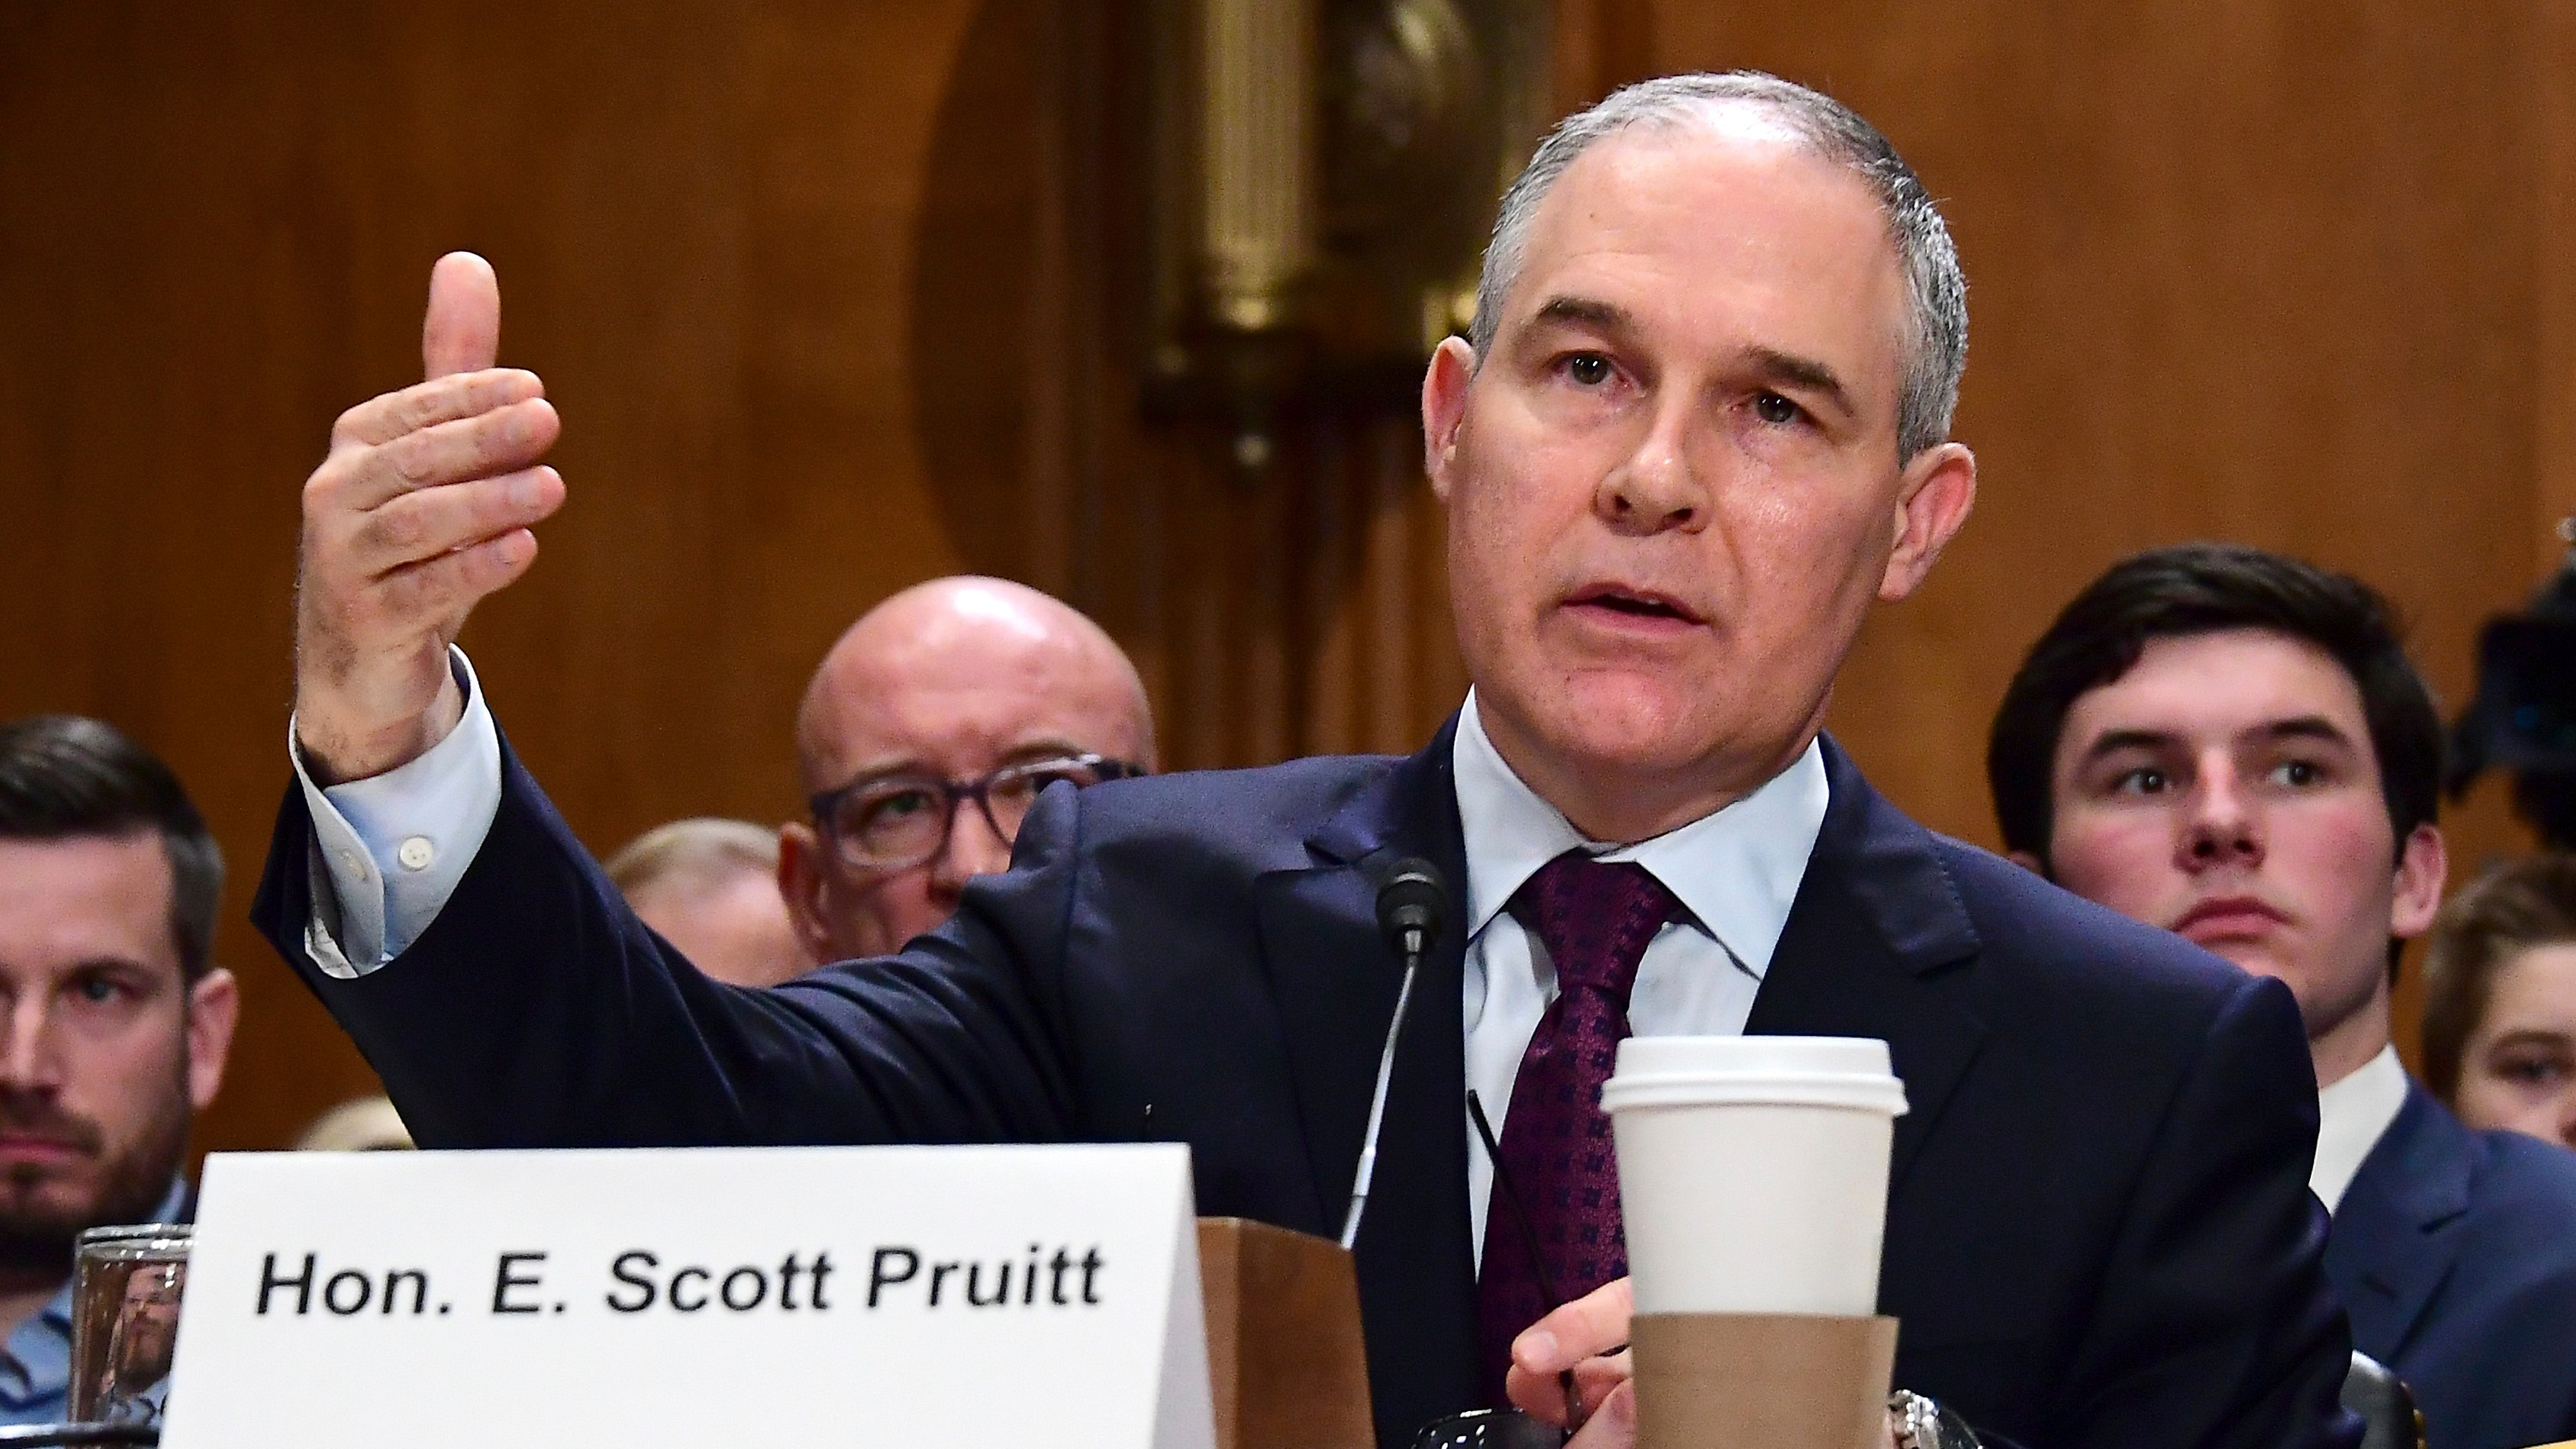 Scott Pruitt Is an Enemy of Environmental Protection